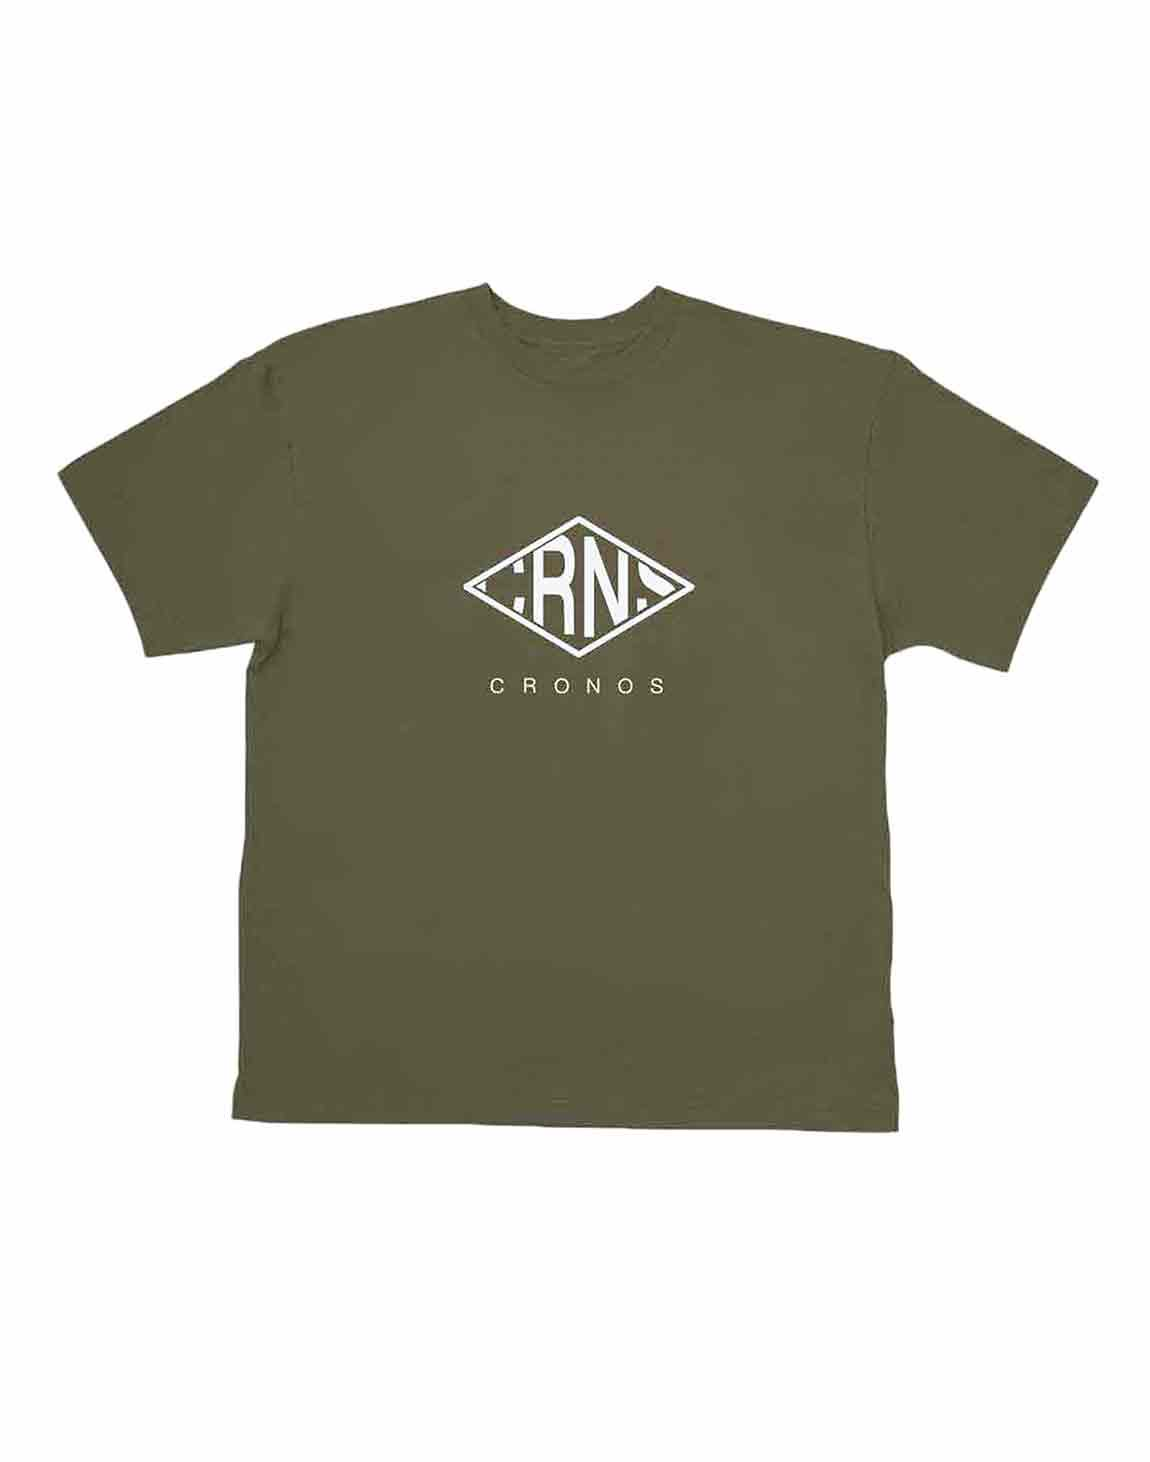 <img class='new_mark_img1' src='https://img.shop-pro.jp/img/new/icons55.gif' style='border:none;display:inline;margin:0px;padding:0px;width:auto;' />CRNS RHOMBUS LOGO OVER SIZE T-SHIRT【KHAKI】